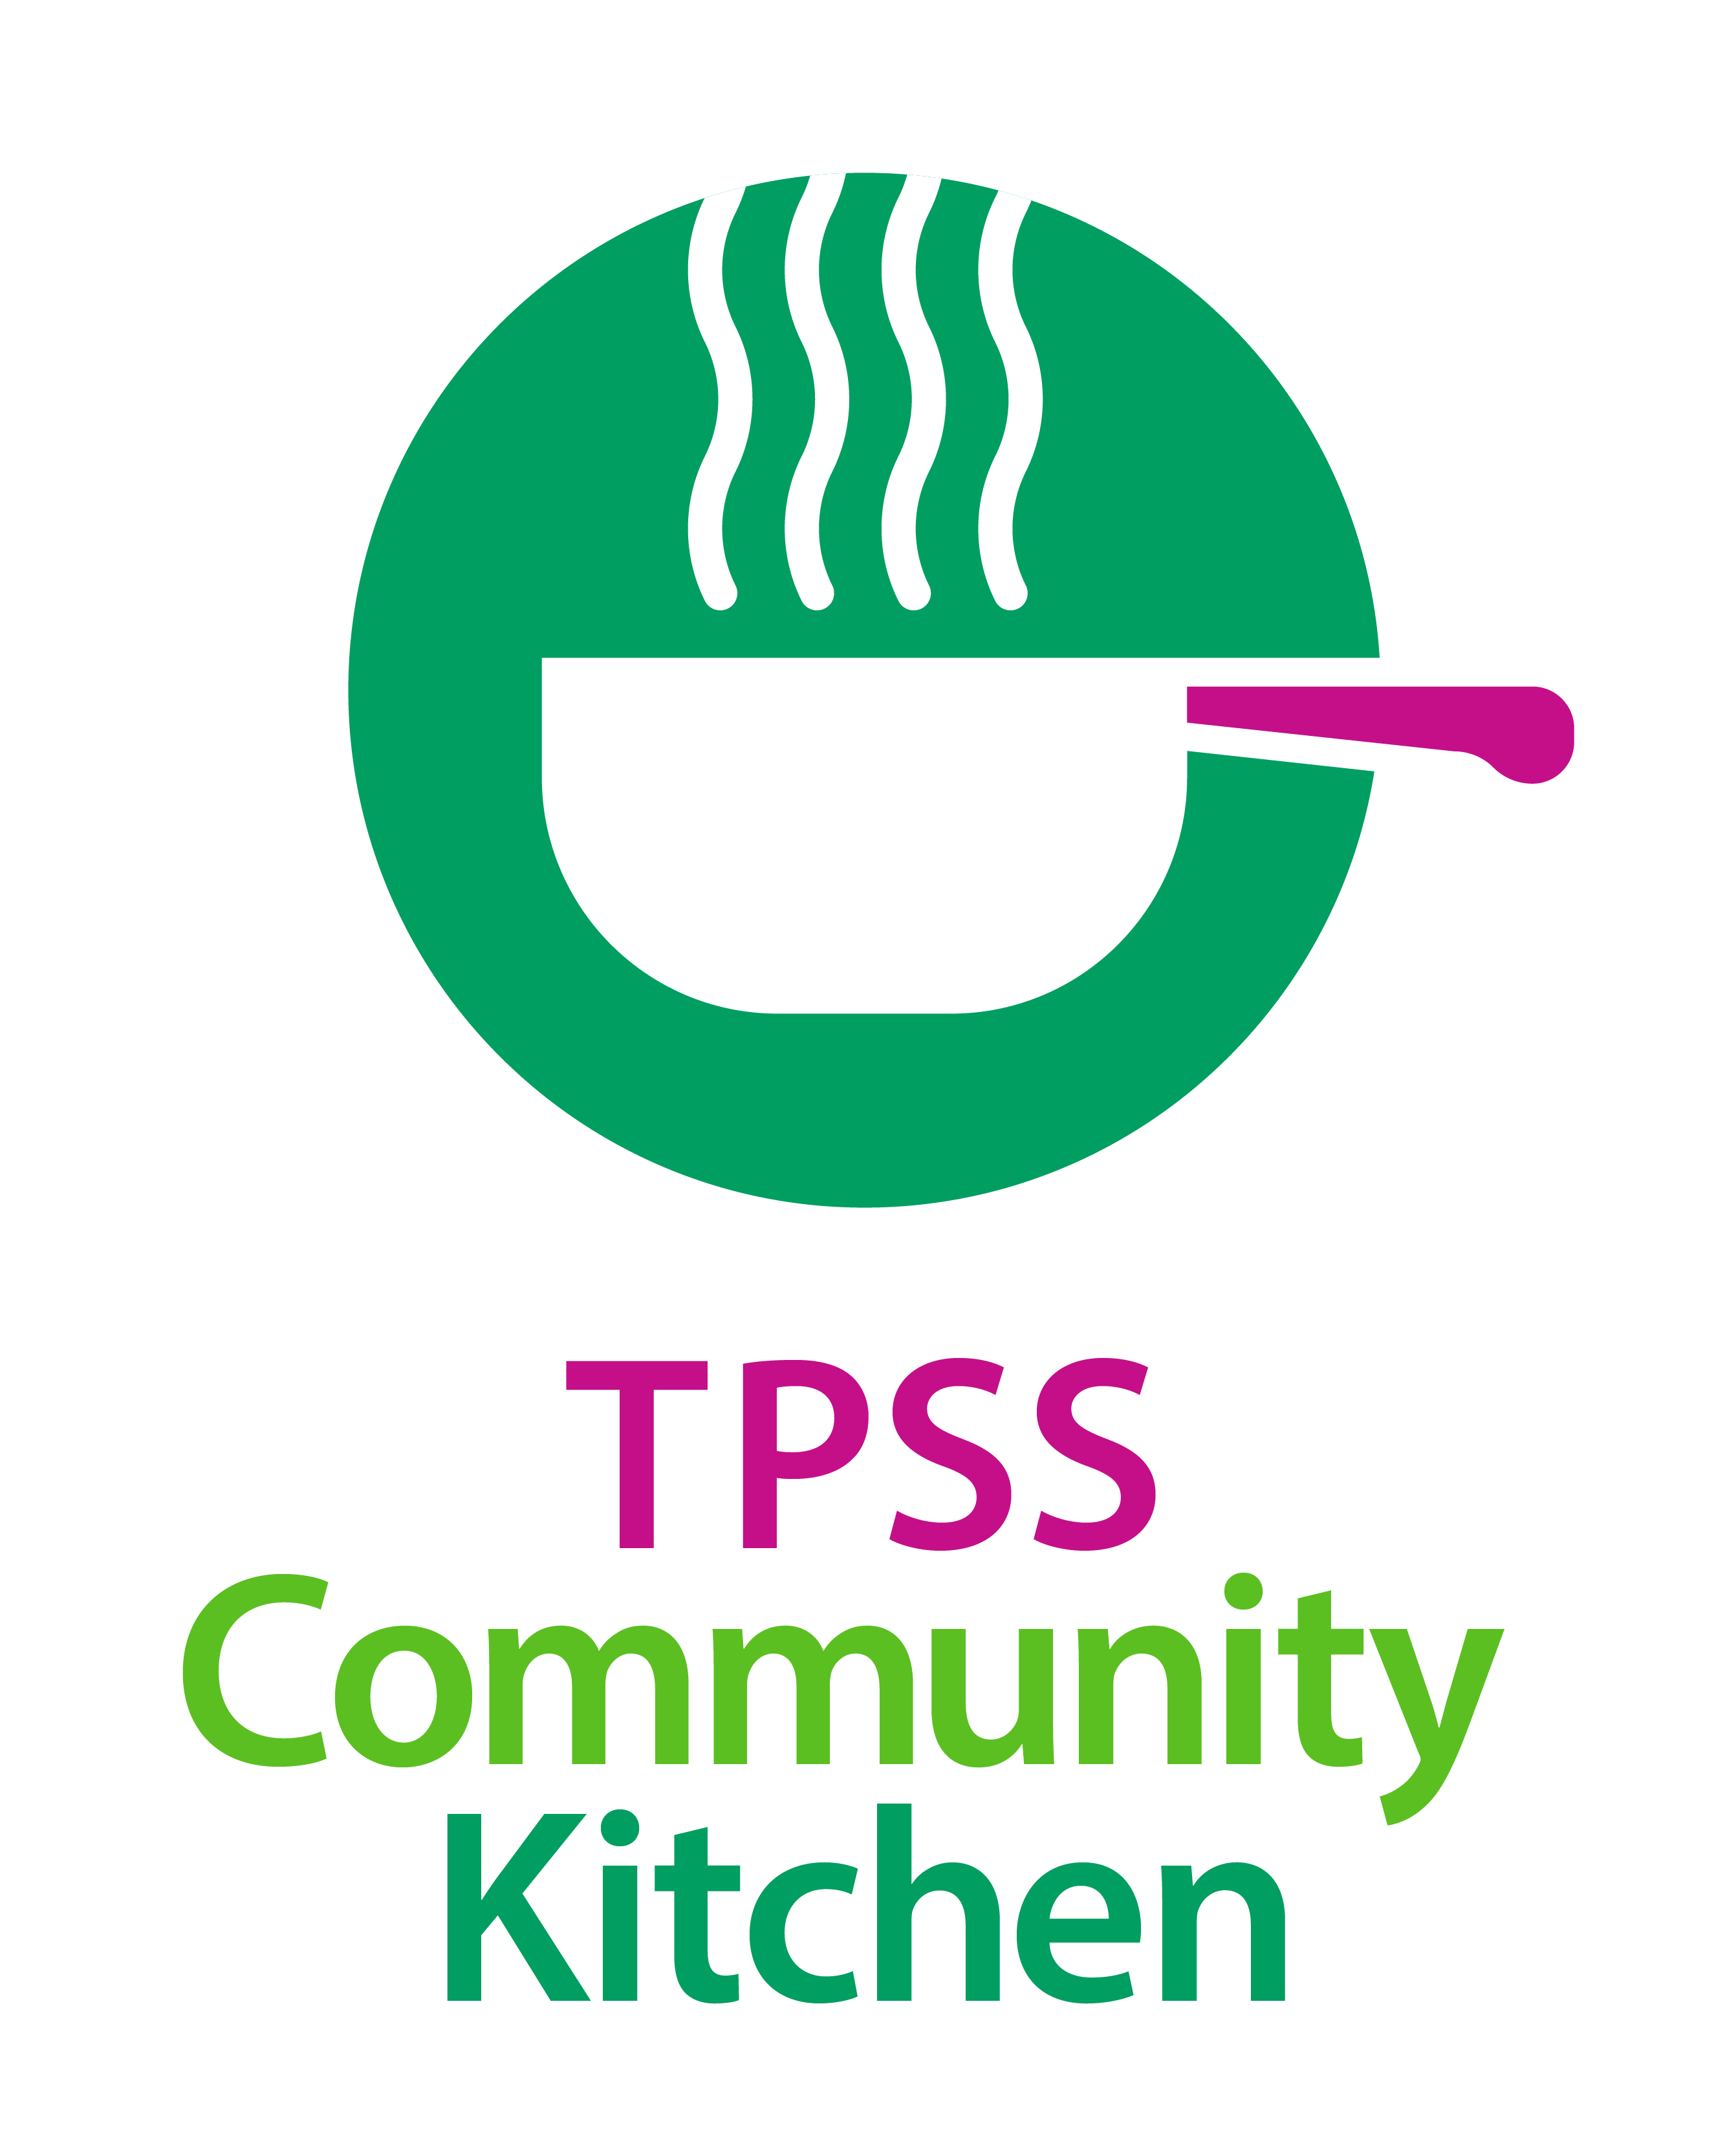 TPSS Community Kitchen Grand Opening